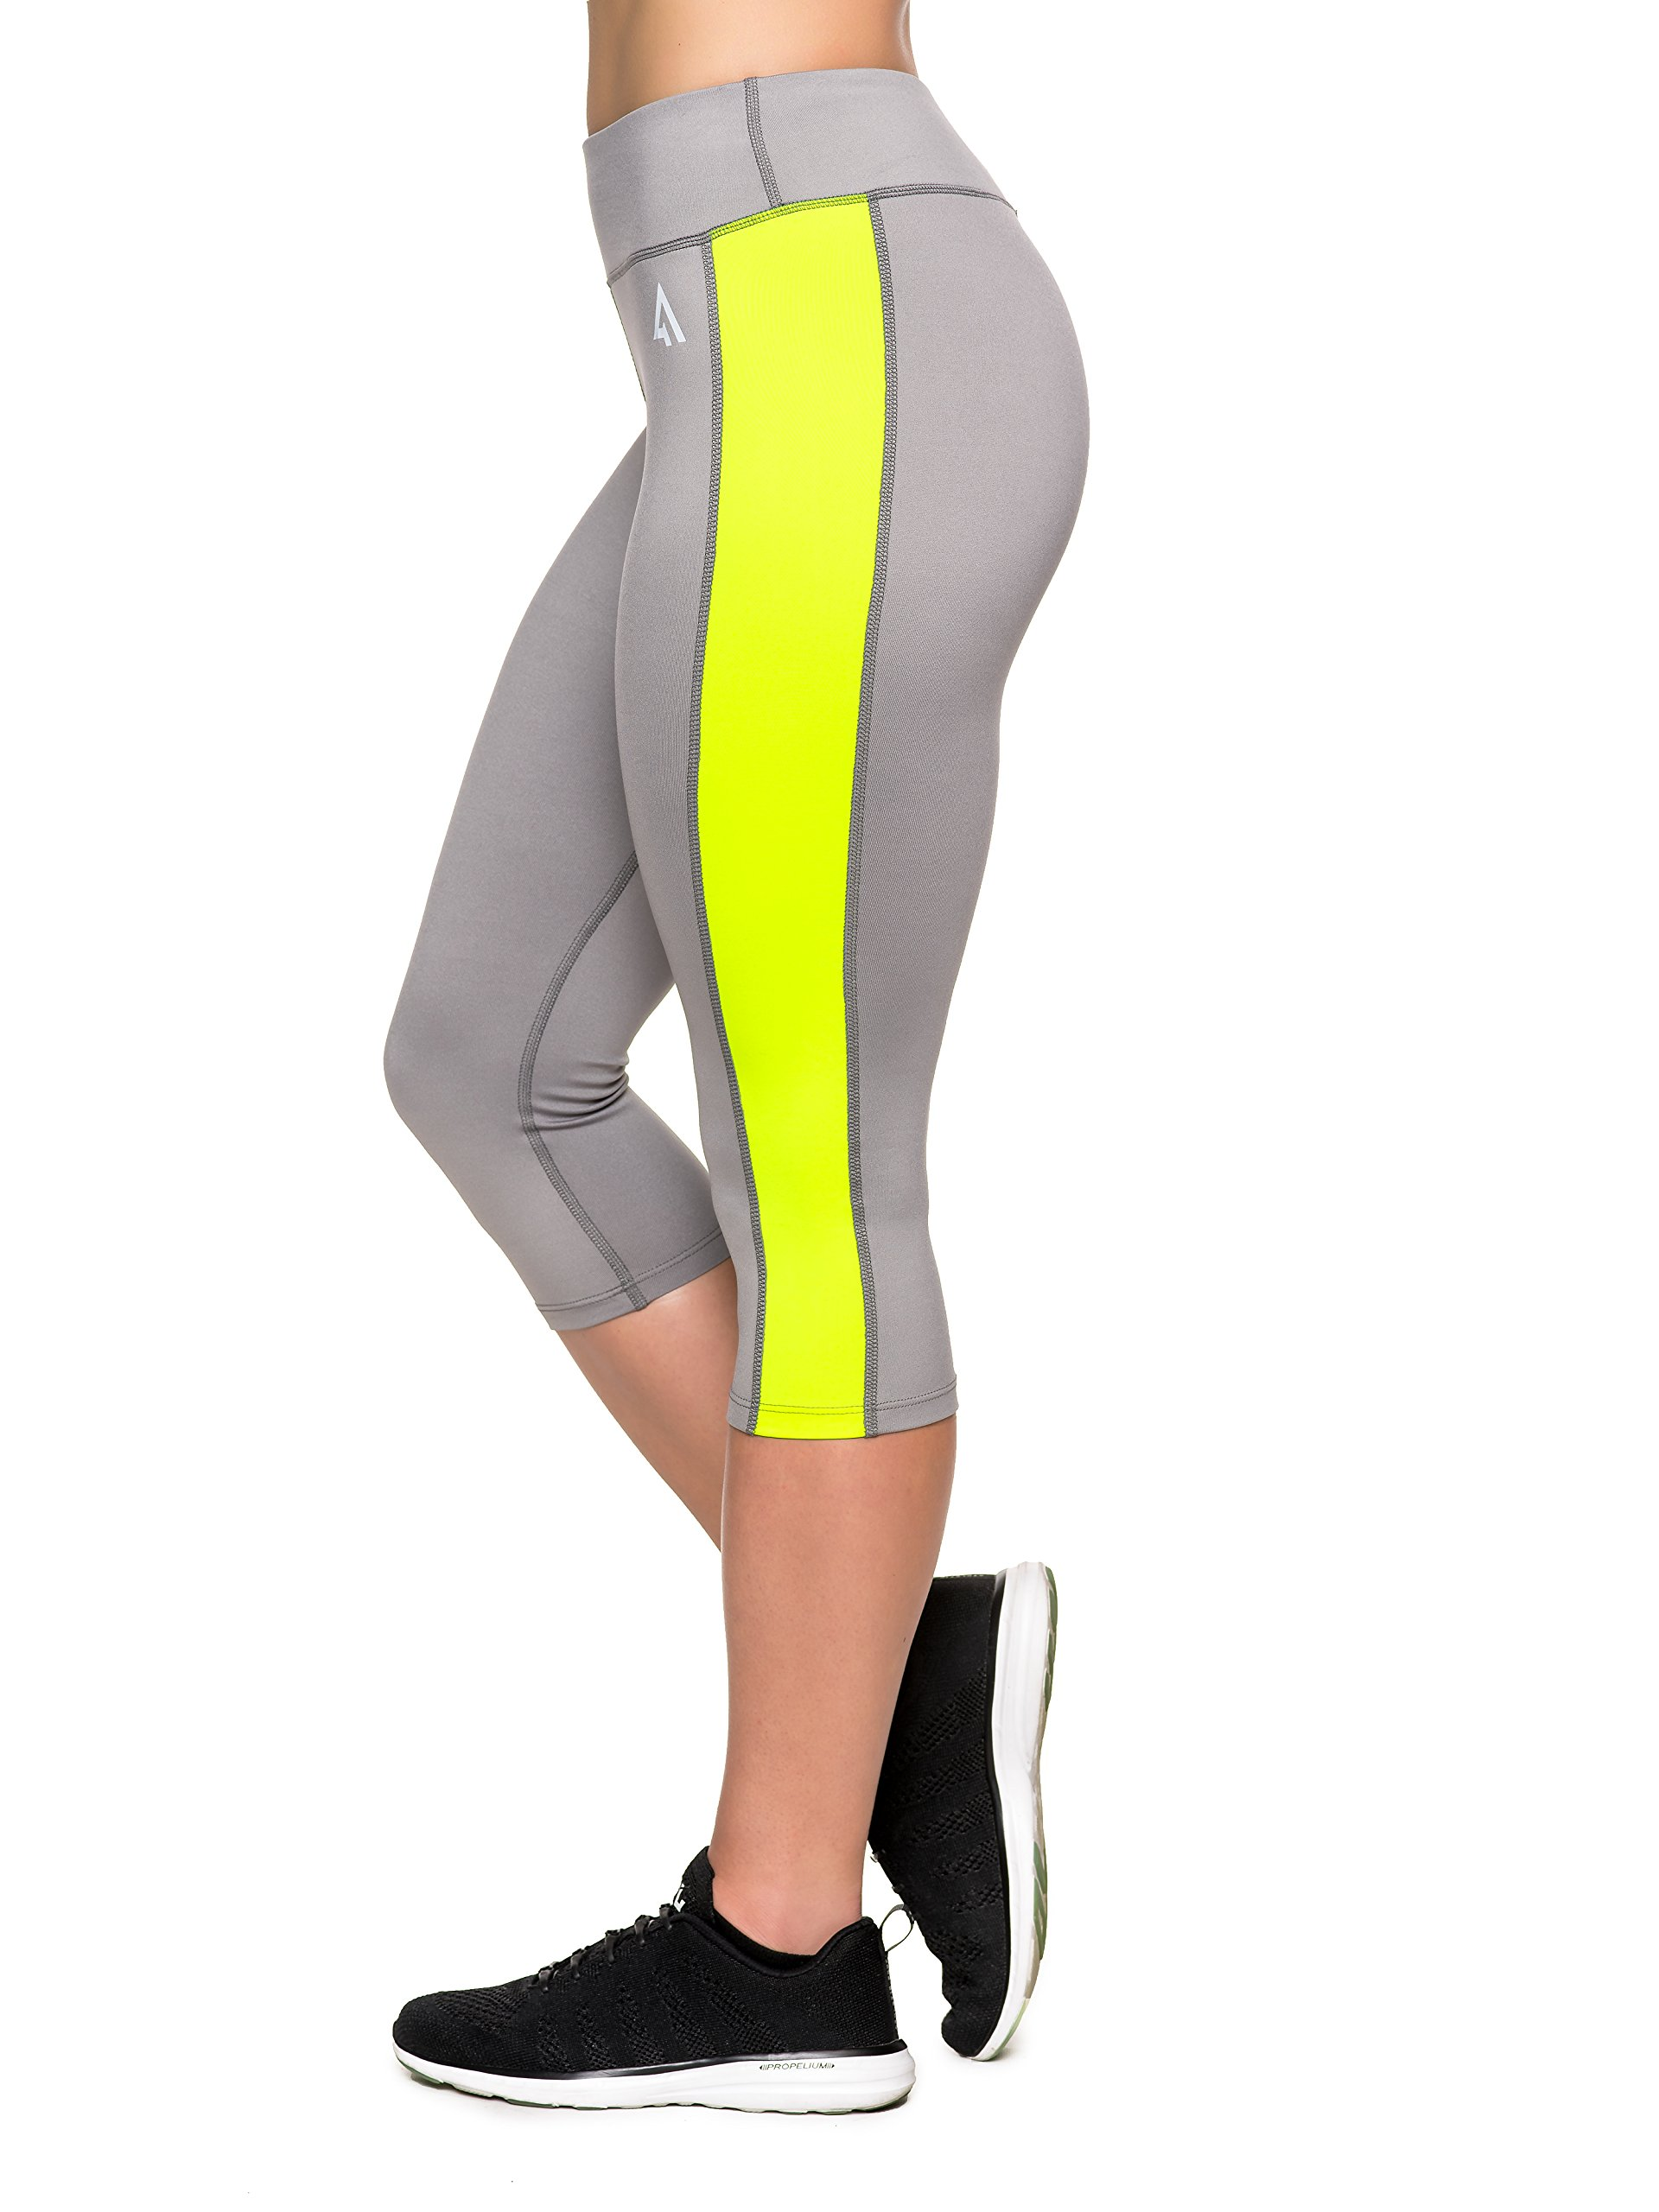 Active1st Women's Yoga Pants Sport Leggings – High Waist, Capri, Tagless